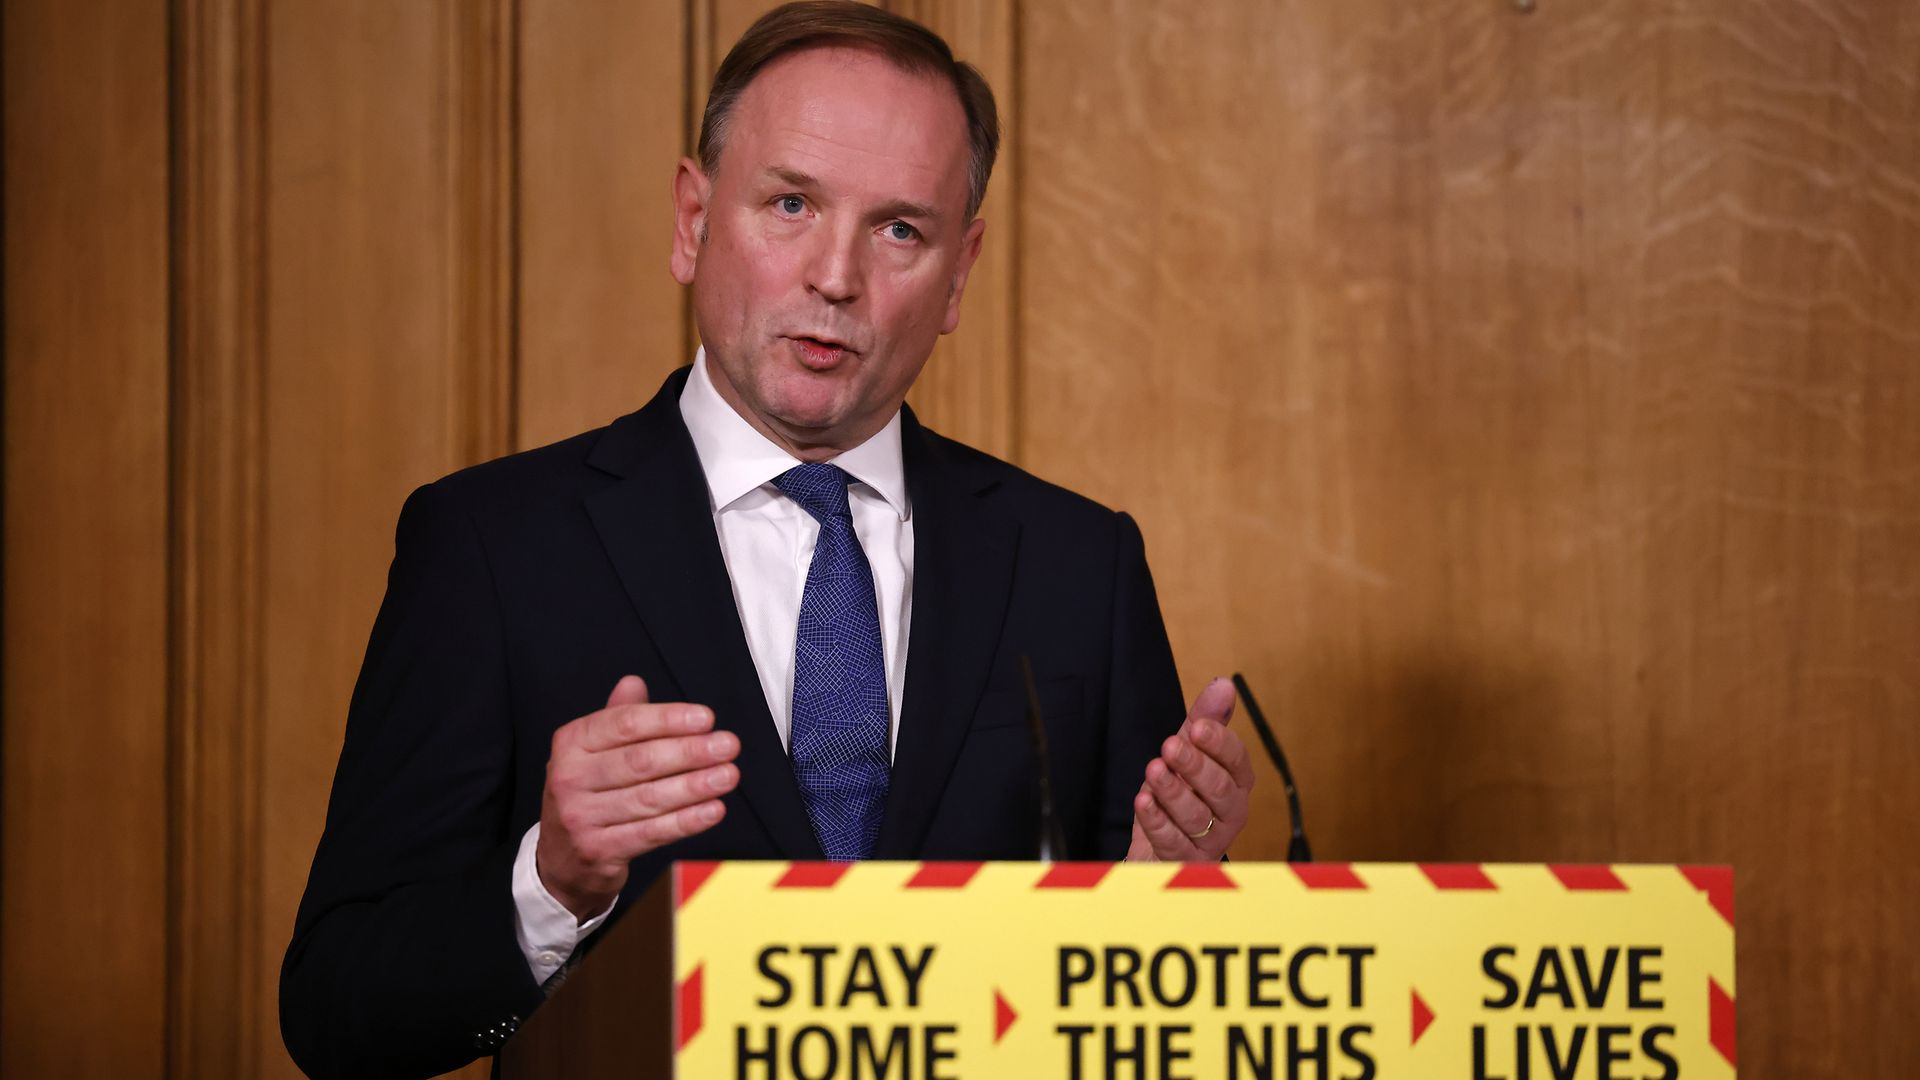 Sir Simon Stevens, Chief Executive of the National Health Service in England during a media briefing on coronavirus (COVID-19) in Downing Street, London. - Credit: PA